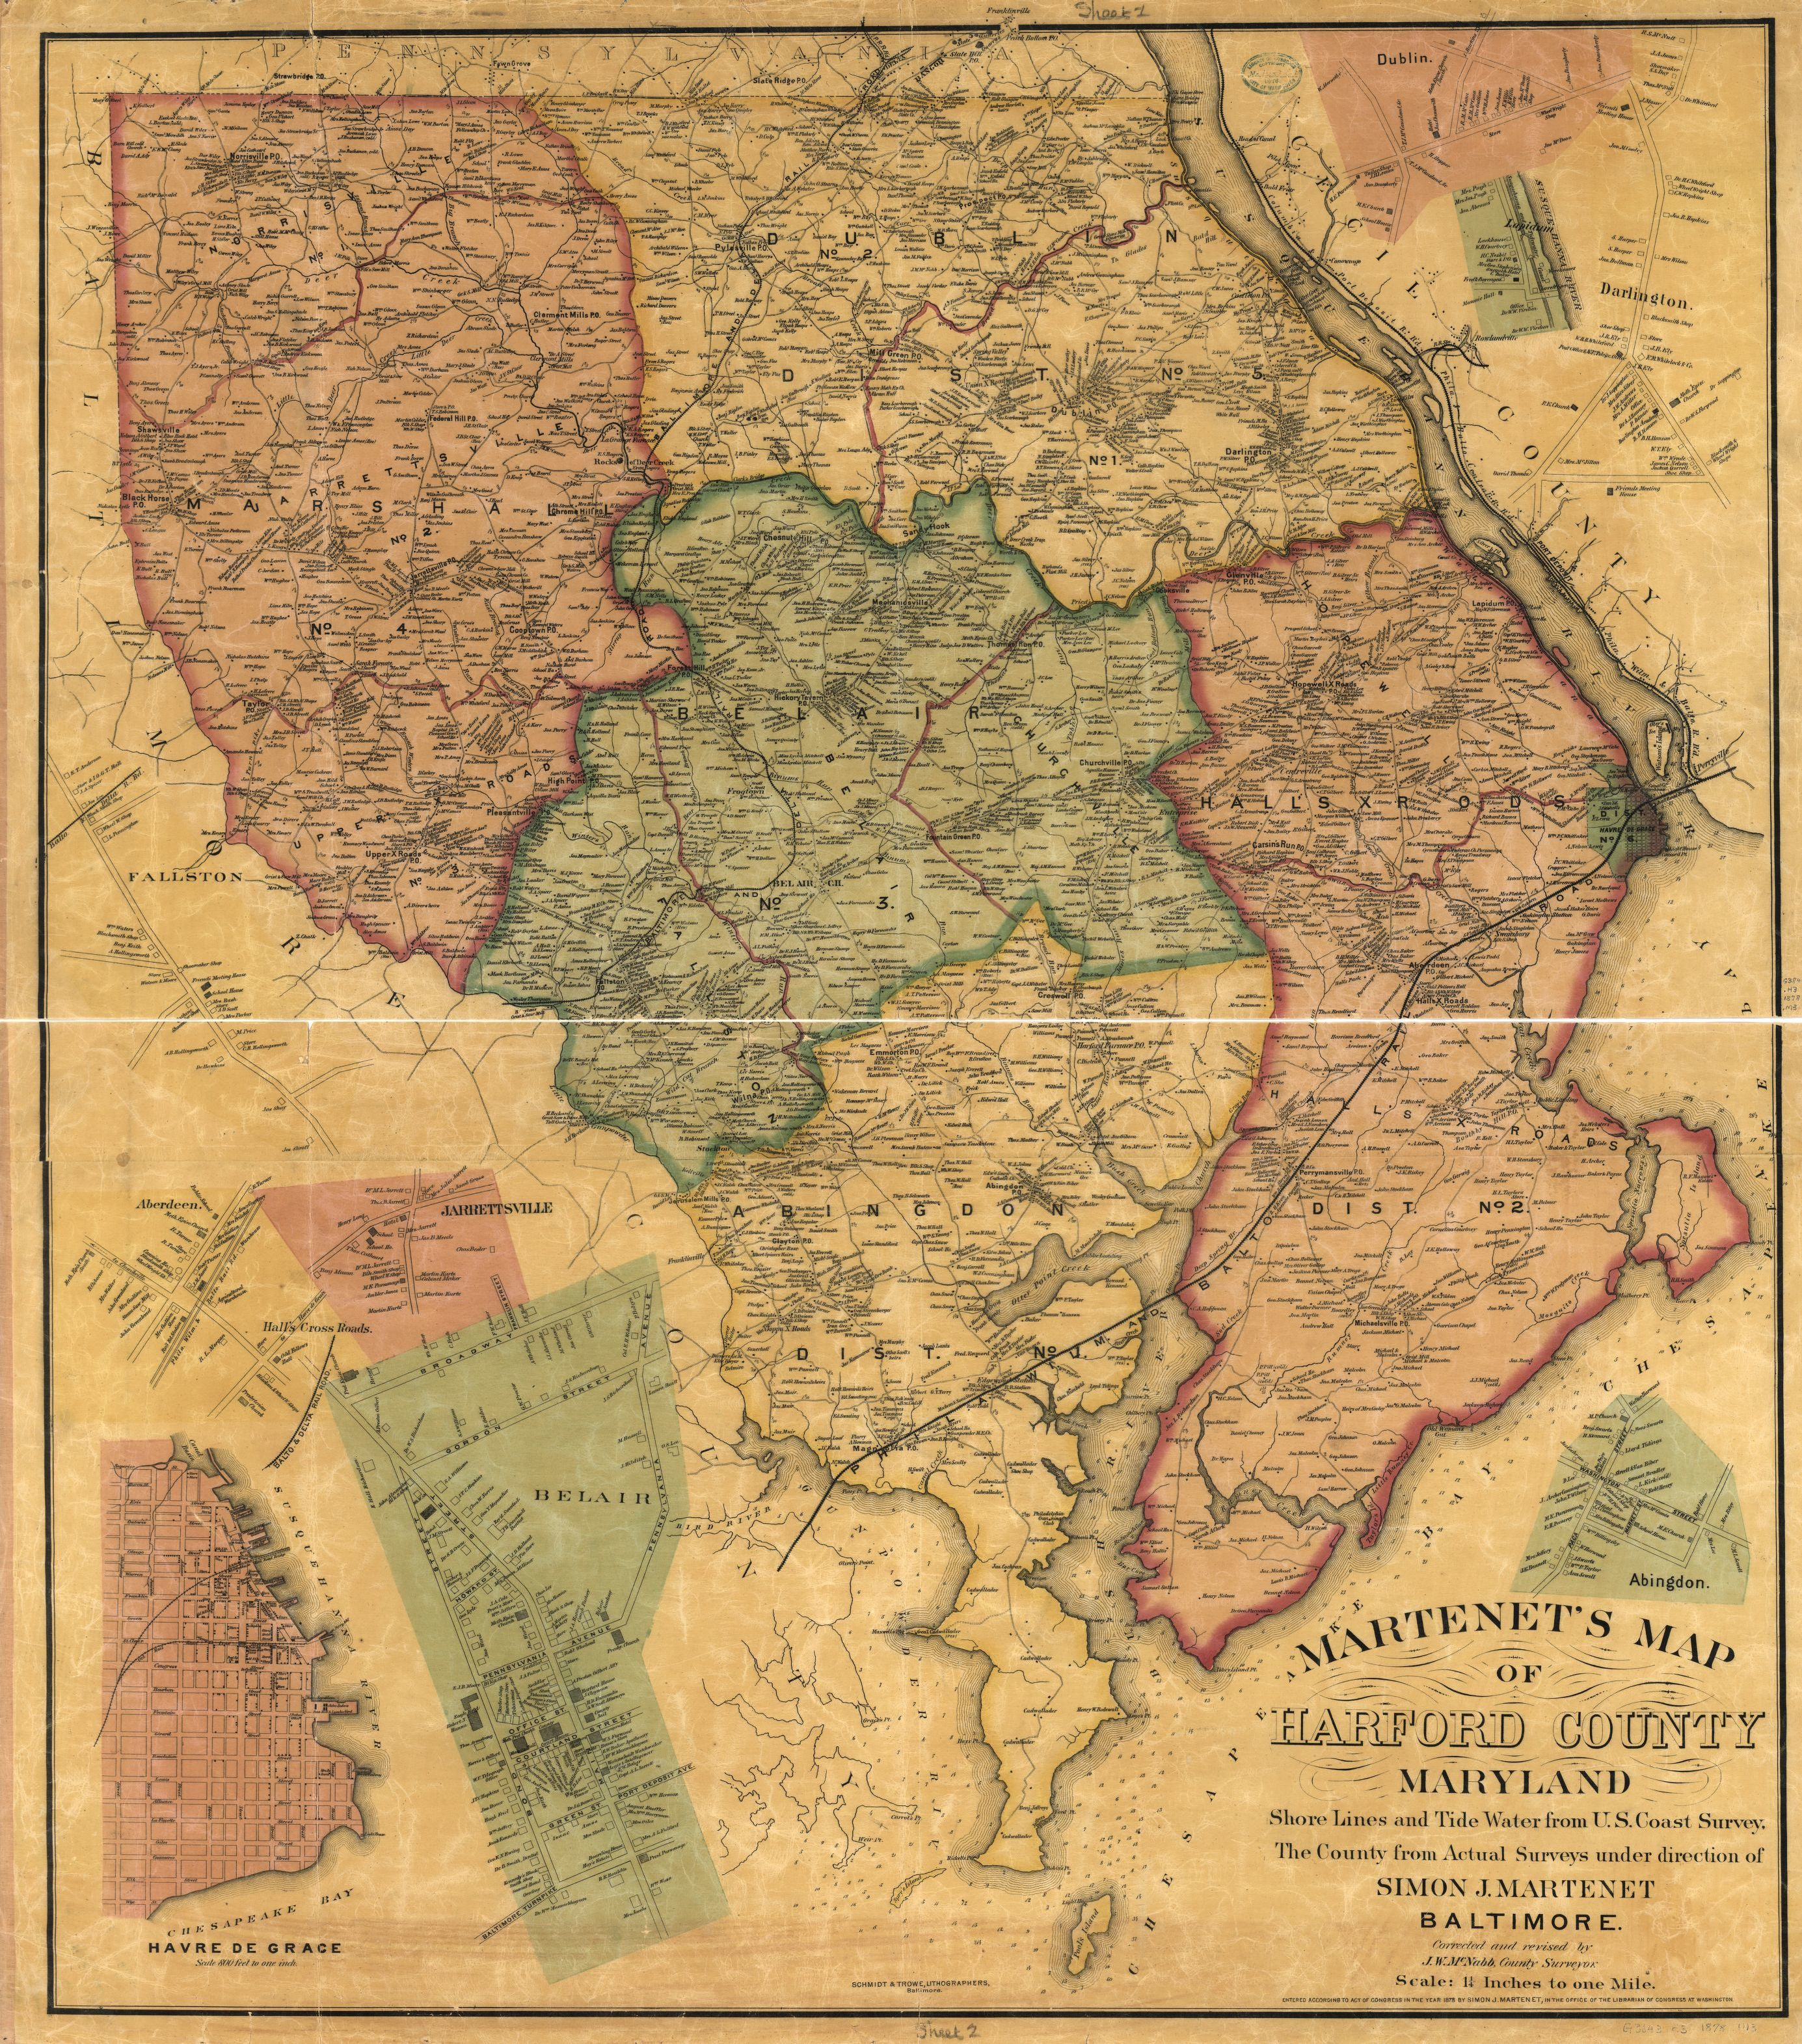 How to make a will in maryland, and what can happen if you don't. Martenet S Map Of Harford County Maryland Shore Lines And Tide Water From U S Coast Survey The County From Actual Surveys Library Of Congress